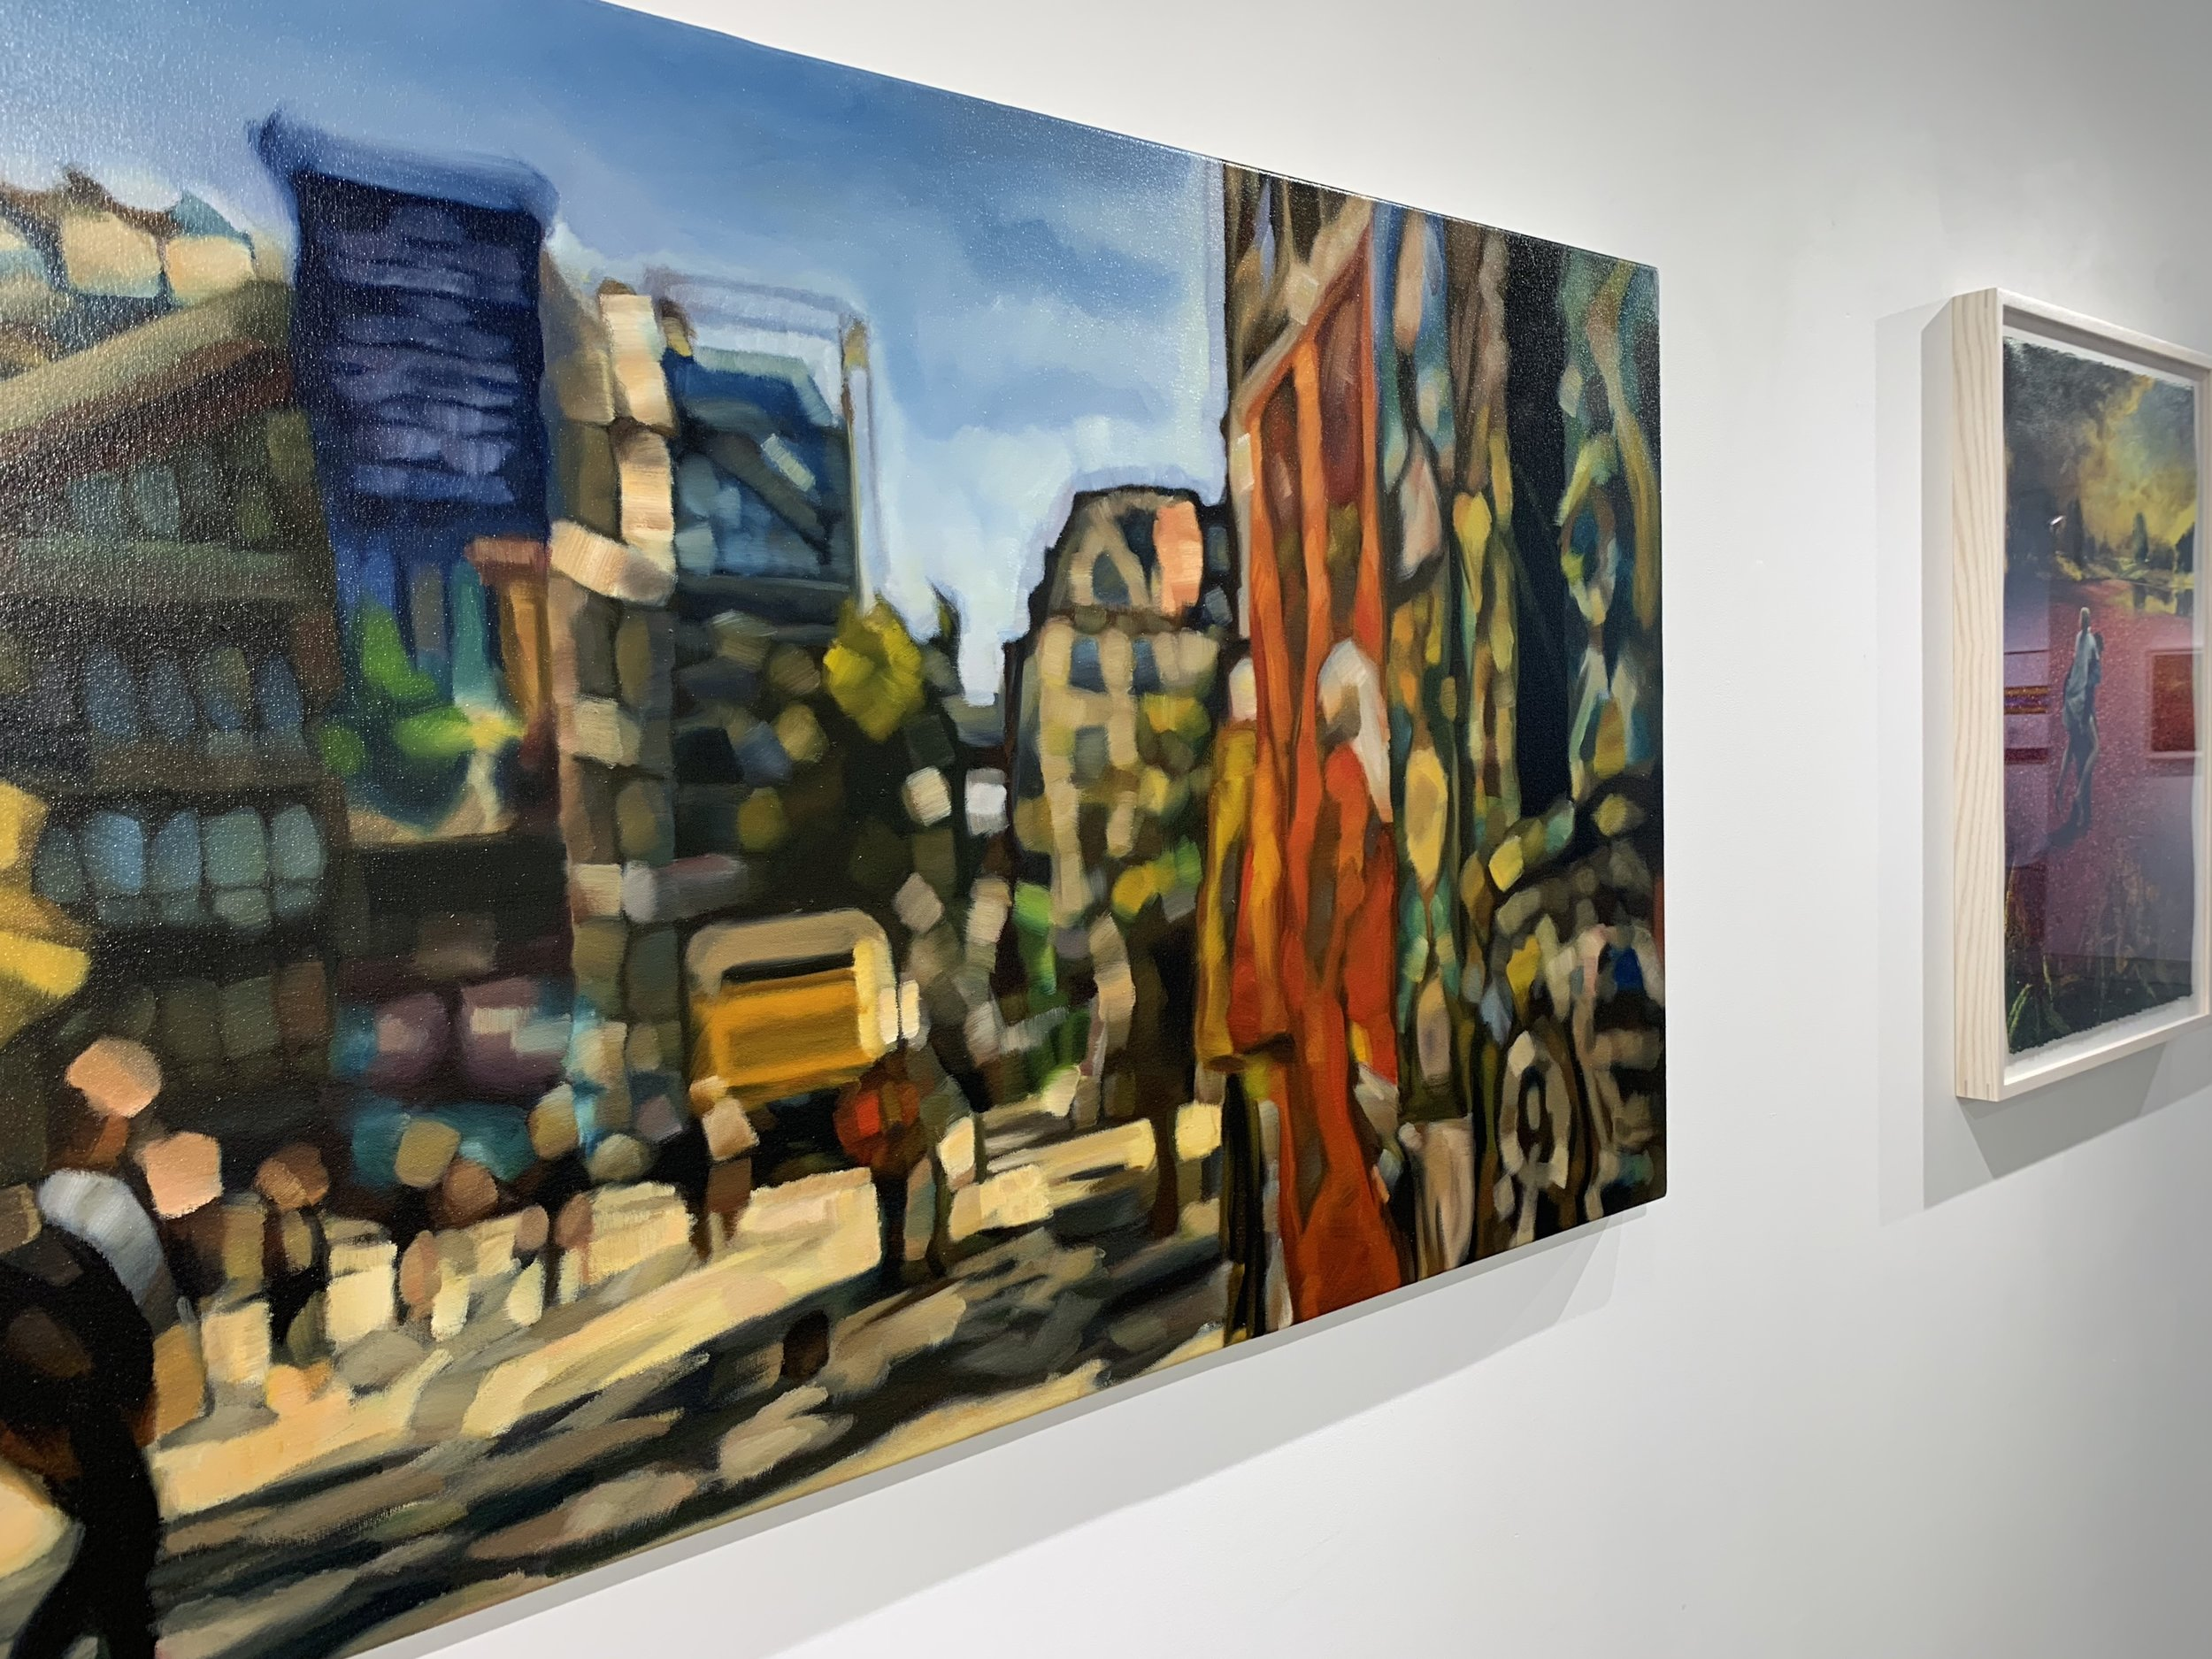 Mishael Coggeshall-Burr,  Pompidou Graffiti , Oil on canvas, 30 x 48 in., 2019; On view in PICNIC at Abigail Ogilvy Gallery June-August 2019